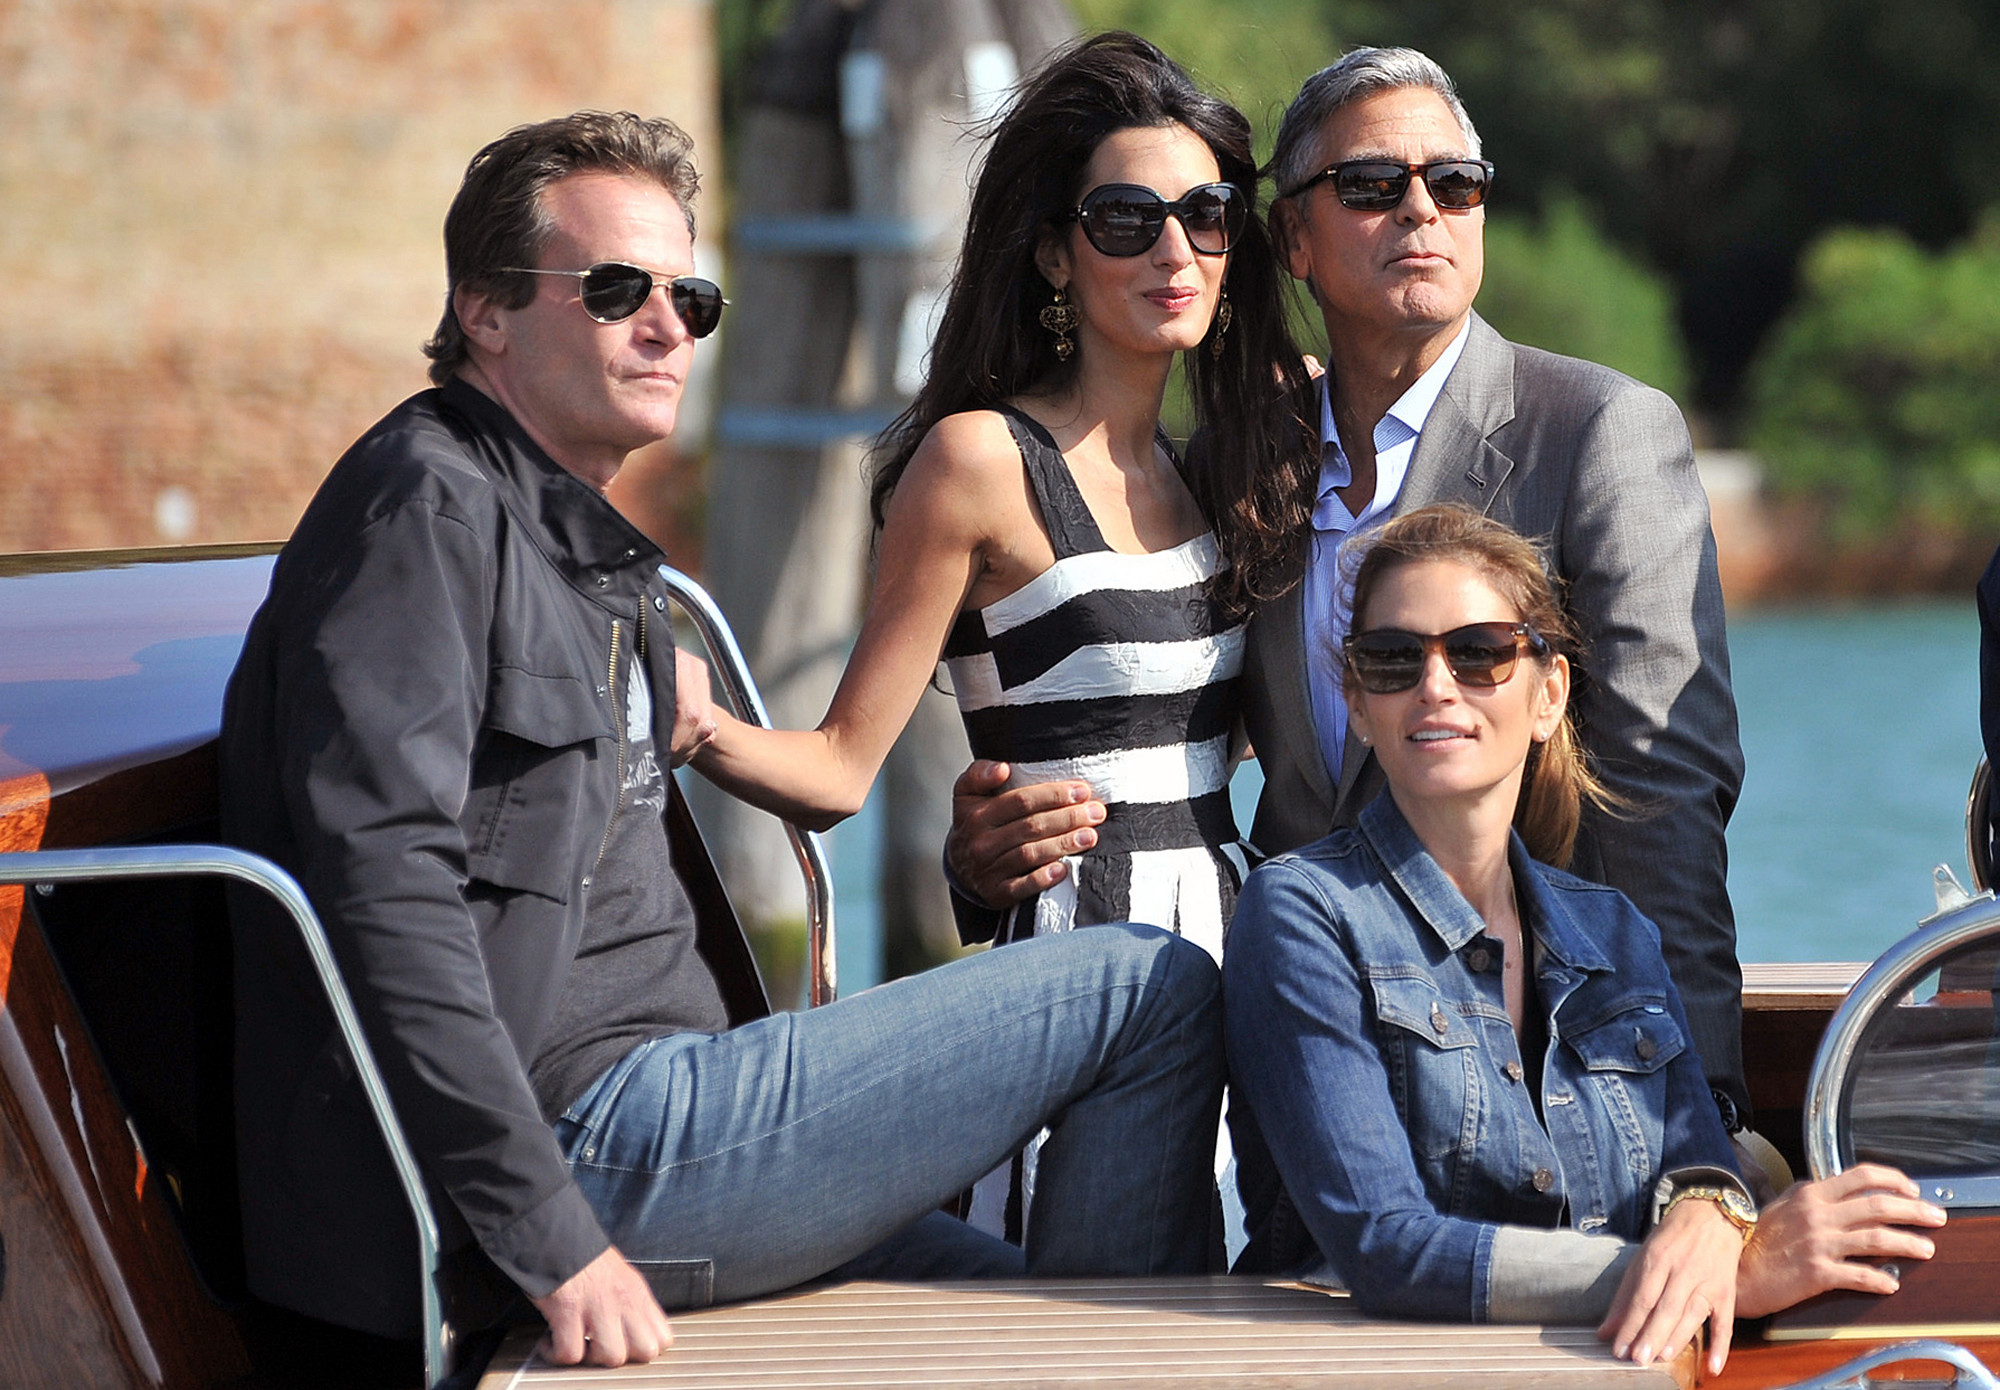 George Clooney with his wife, Amal Clooney and two of their celebrity friends